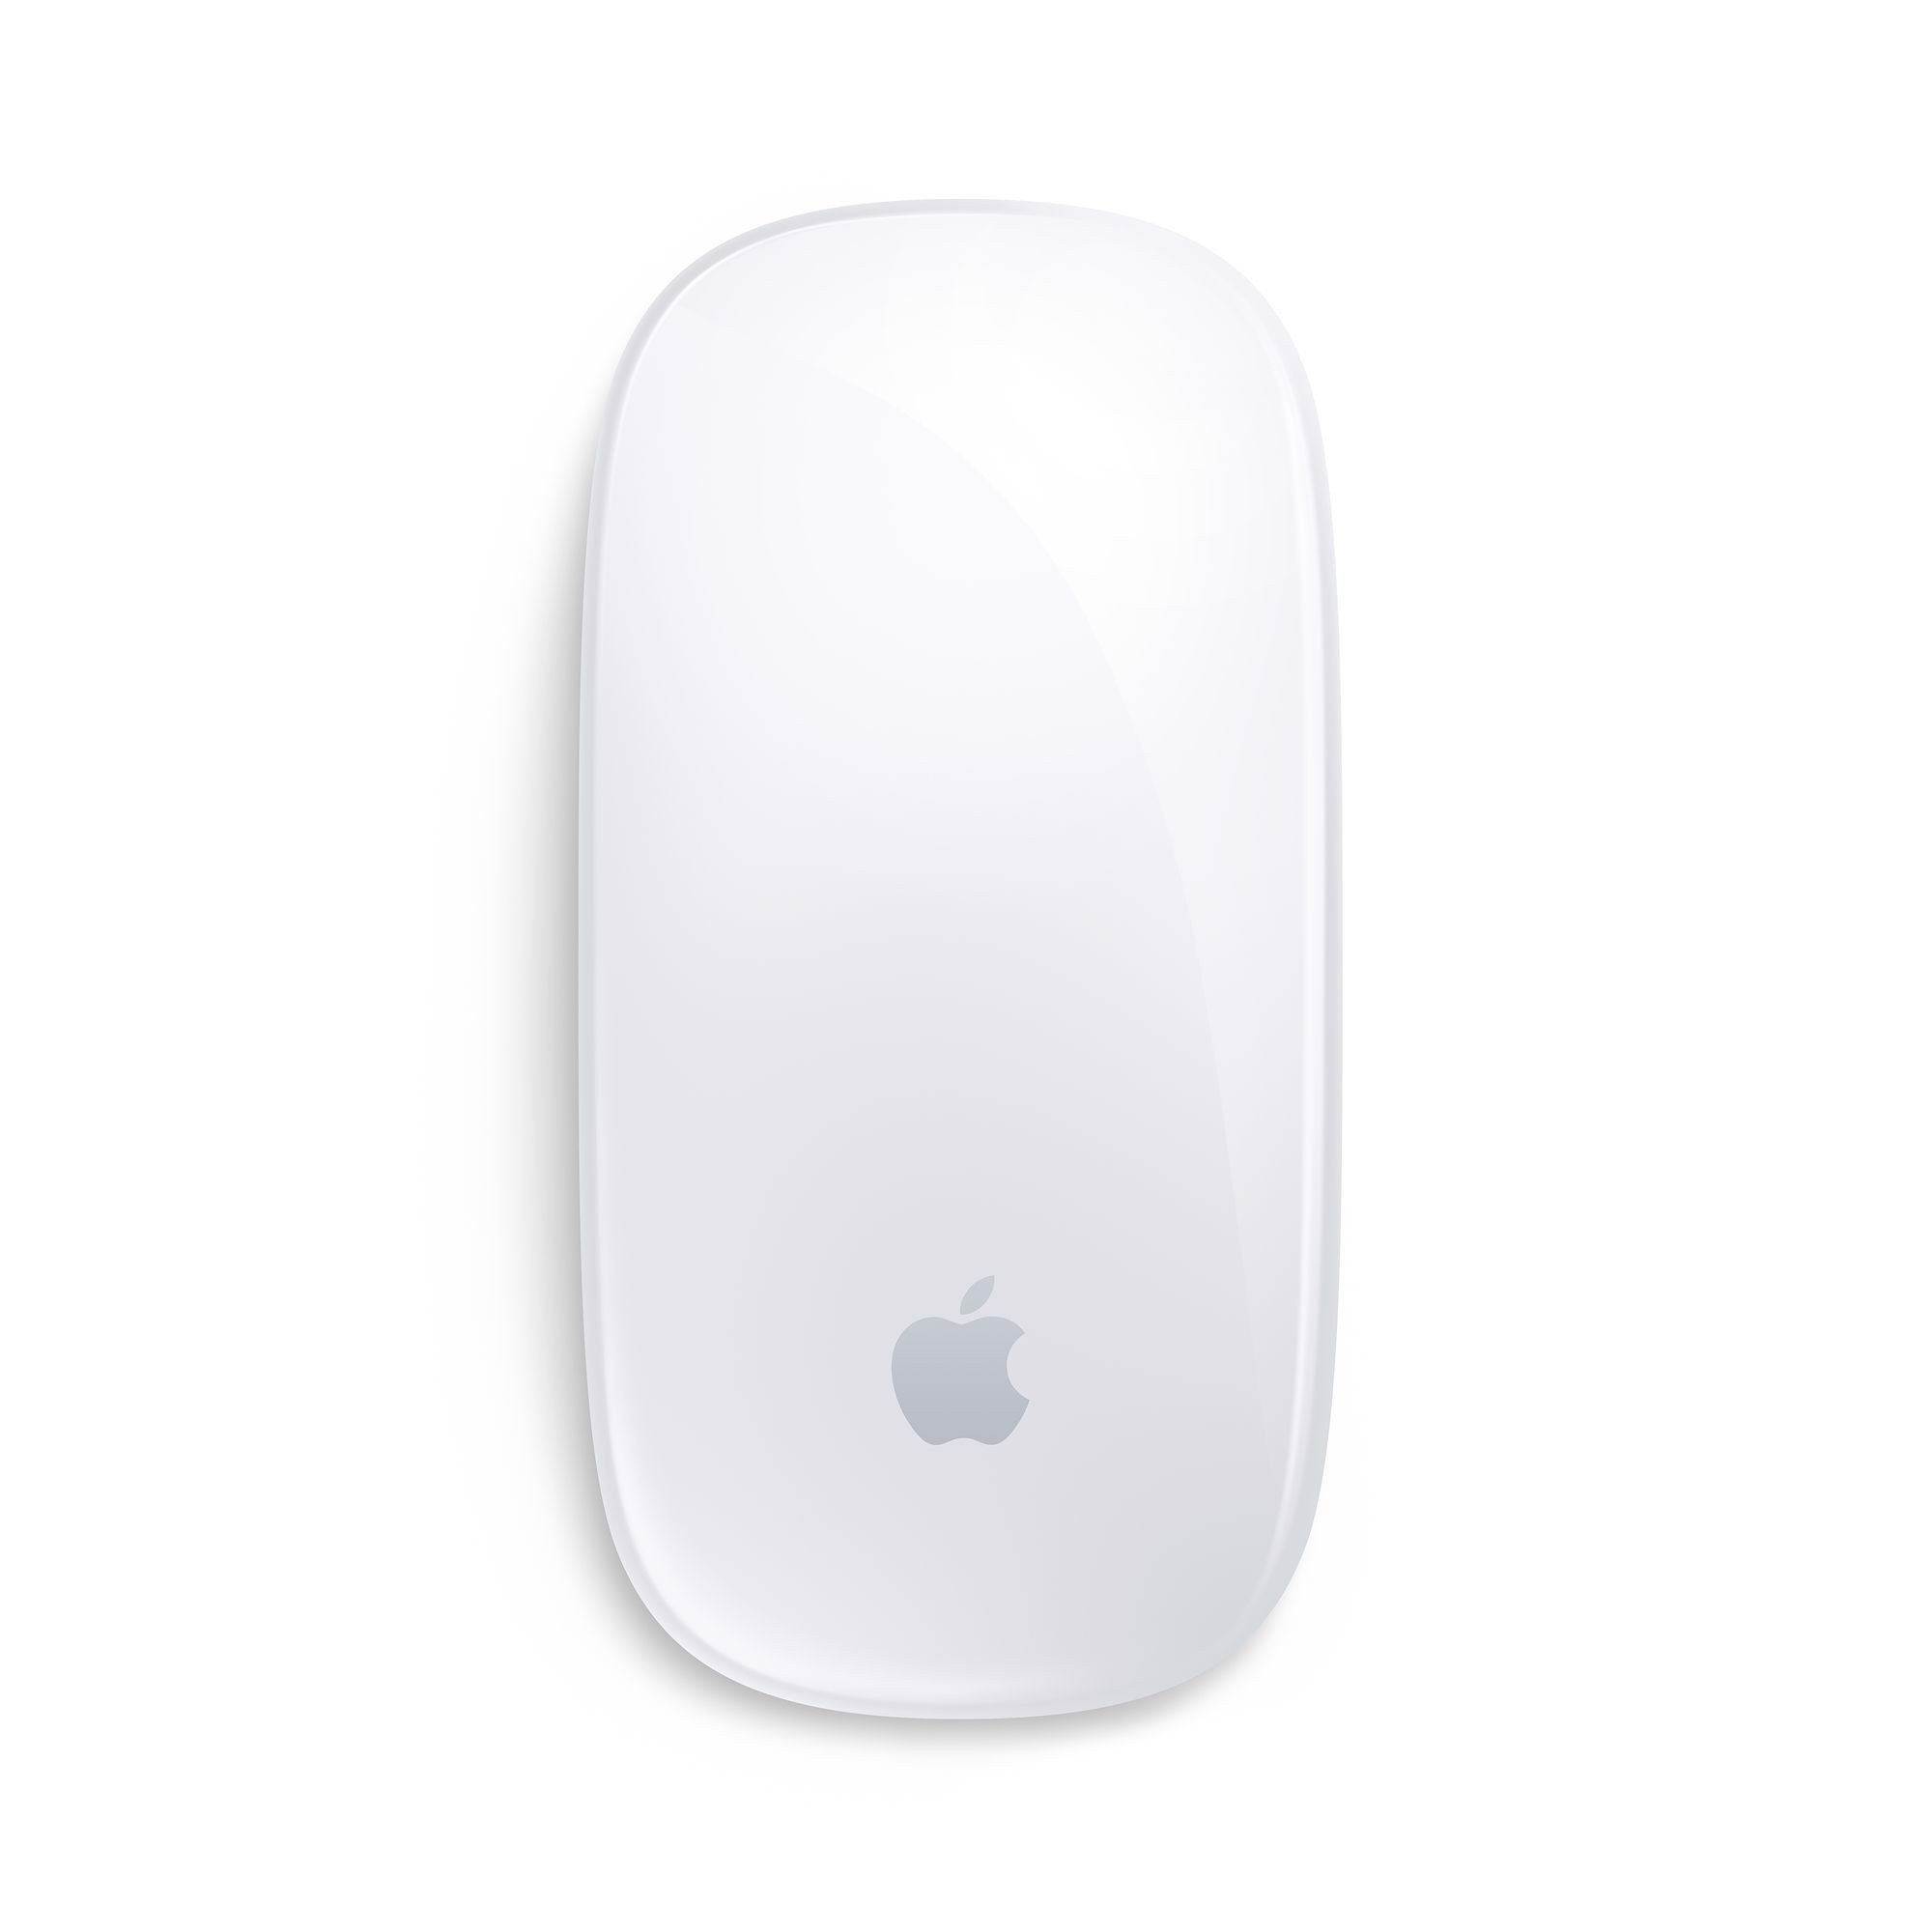 Magic Mouse 2 - Silver